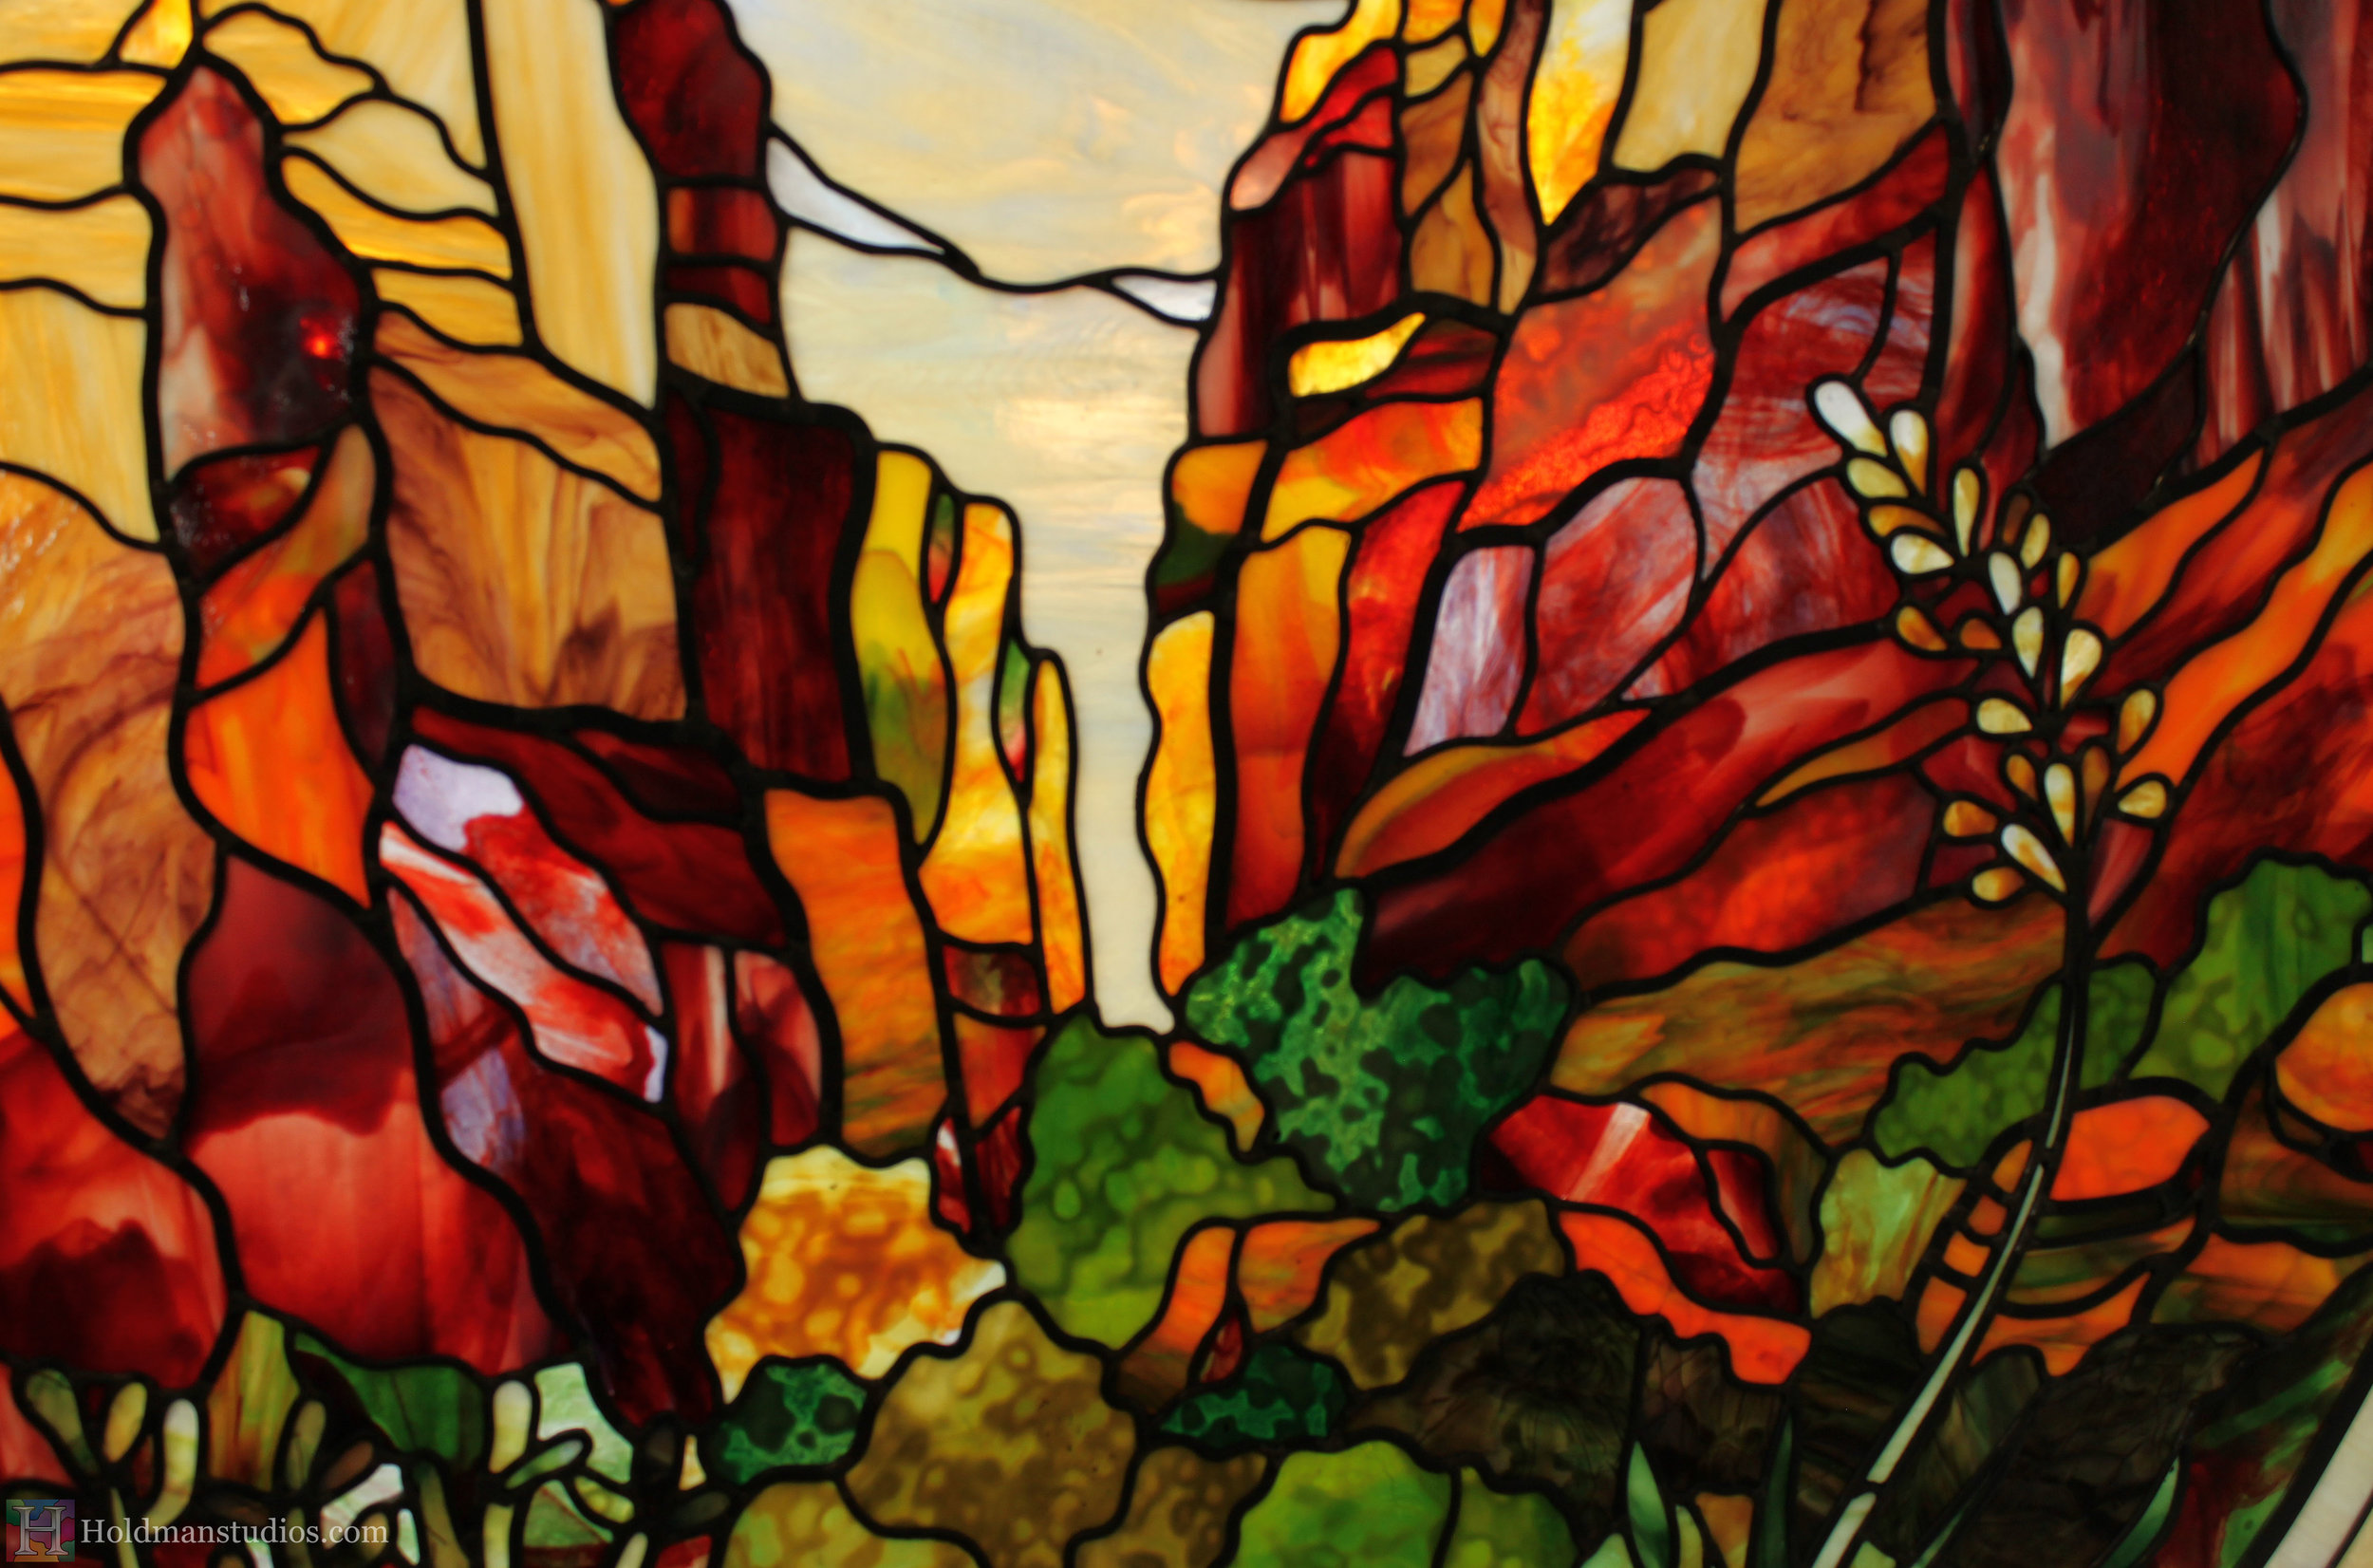 holdman-studios-st-george-airport-stained-glass-window-red-rock-mountains-flowers-plants.jpg